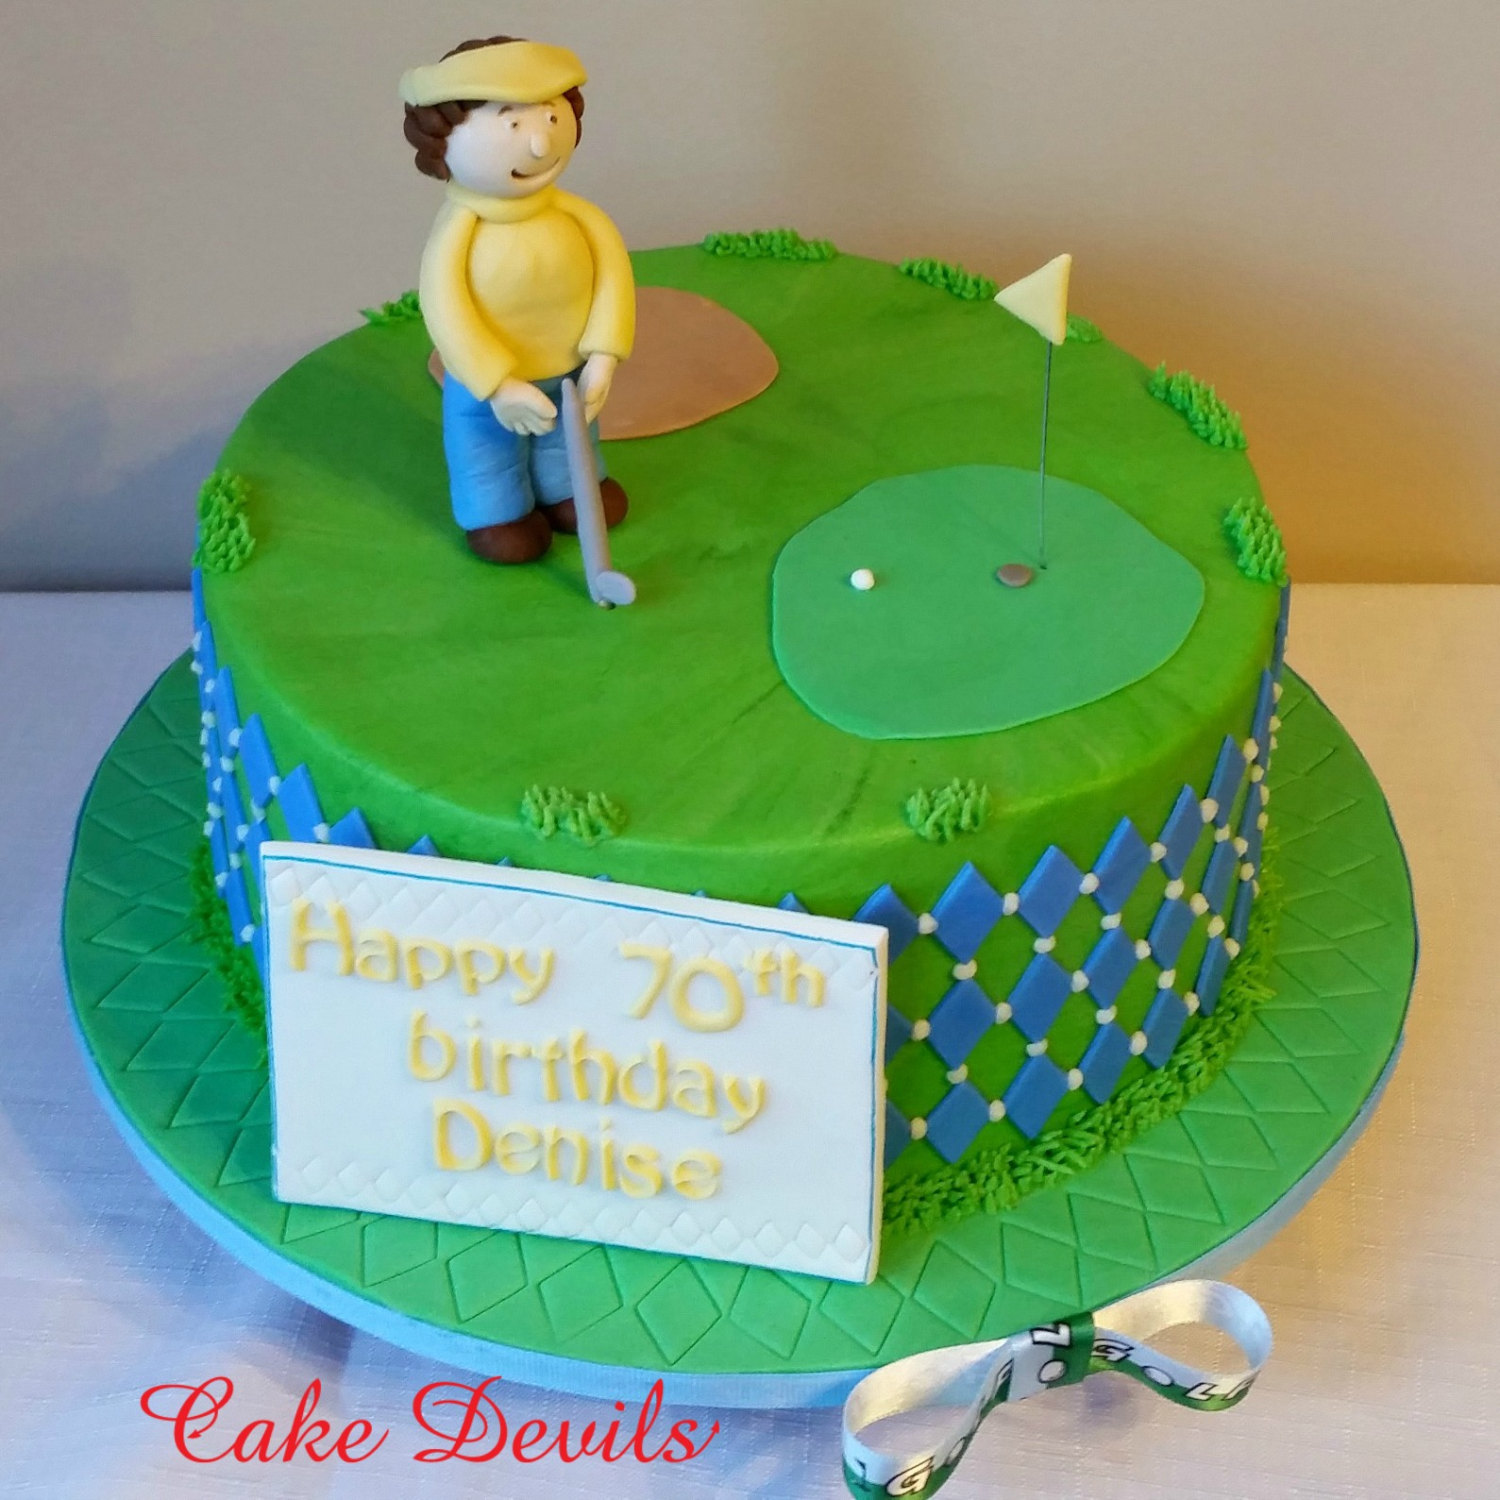 Edible Cake Images Nj : Fondant Golf Cake Topper Kit - Golf Cake Decorations ...